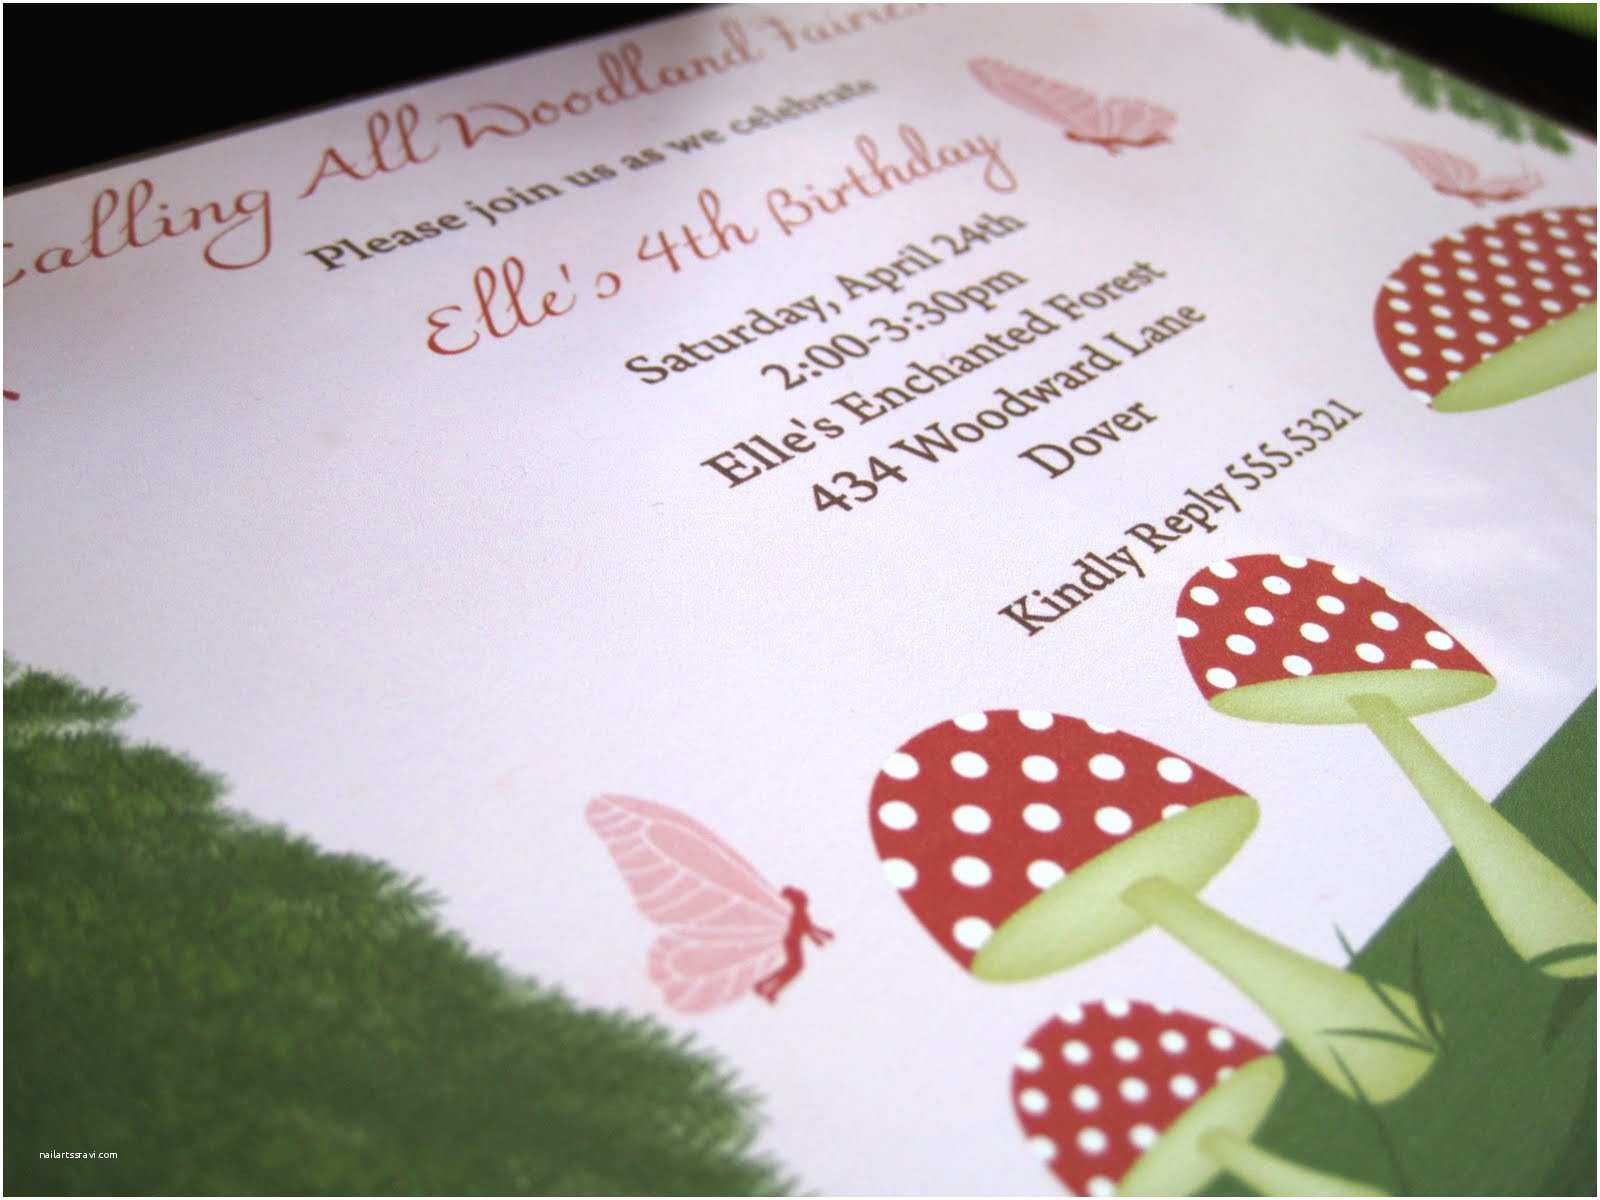 Fairy Birthday Invitations Kate Landers events Llc Woodland Fairy Birthday Party